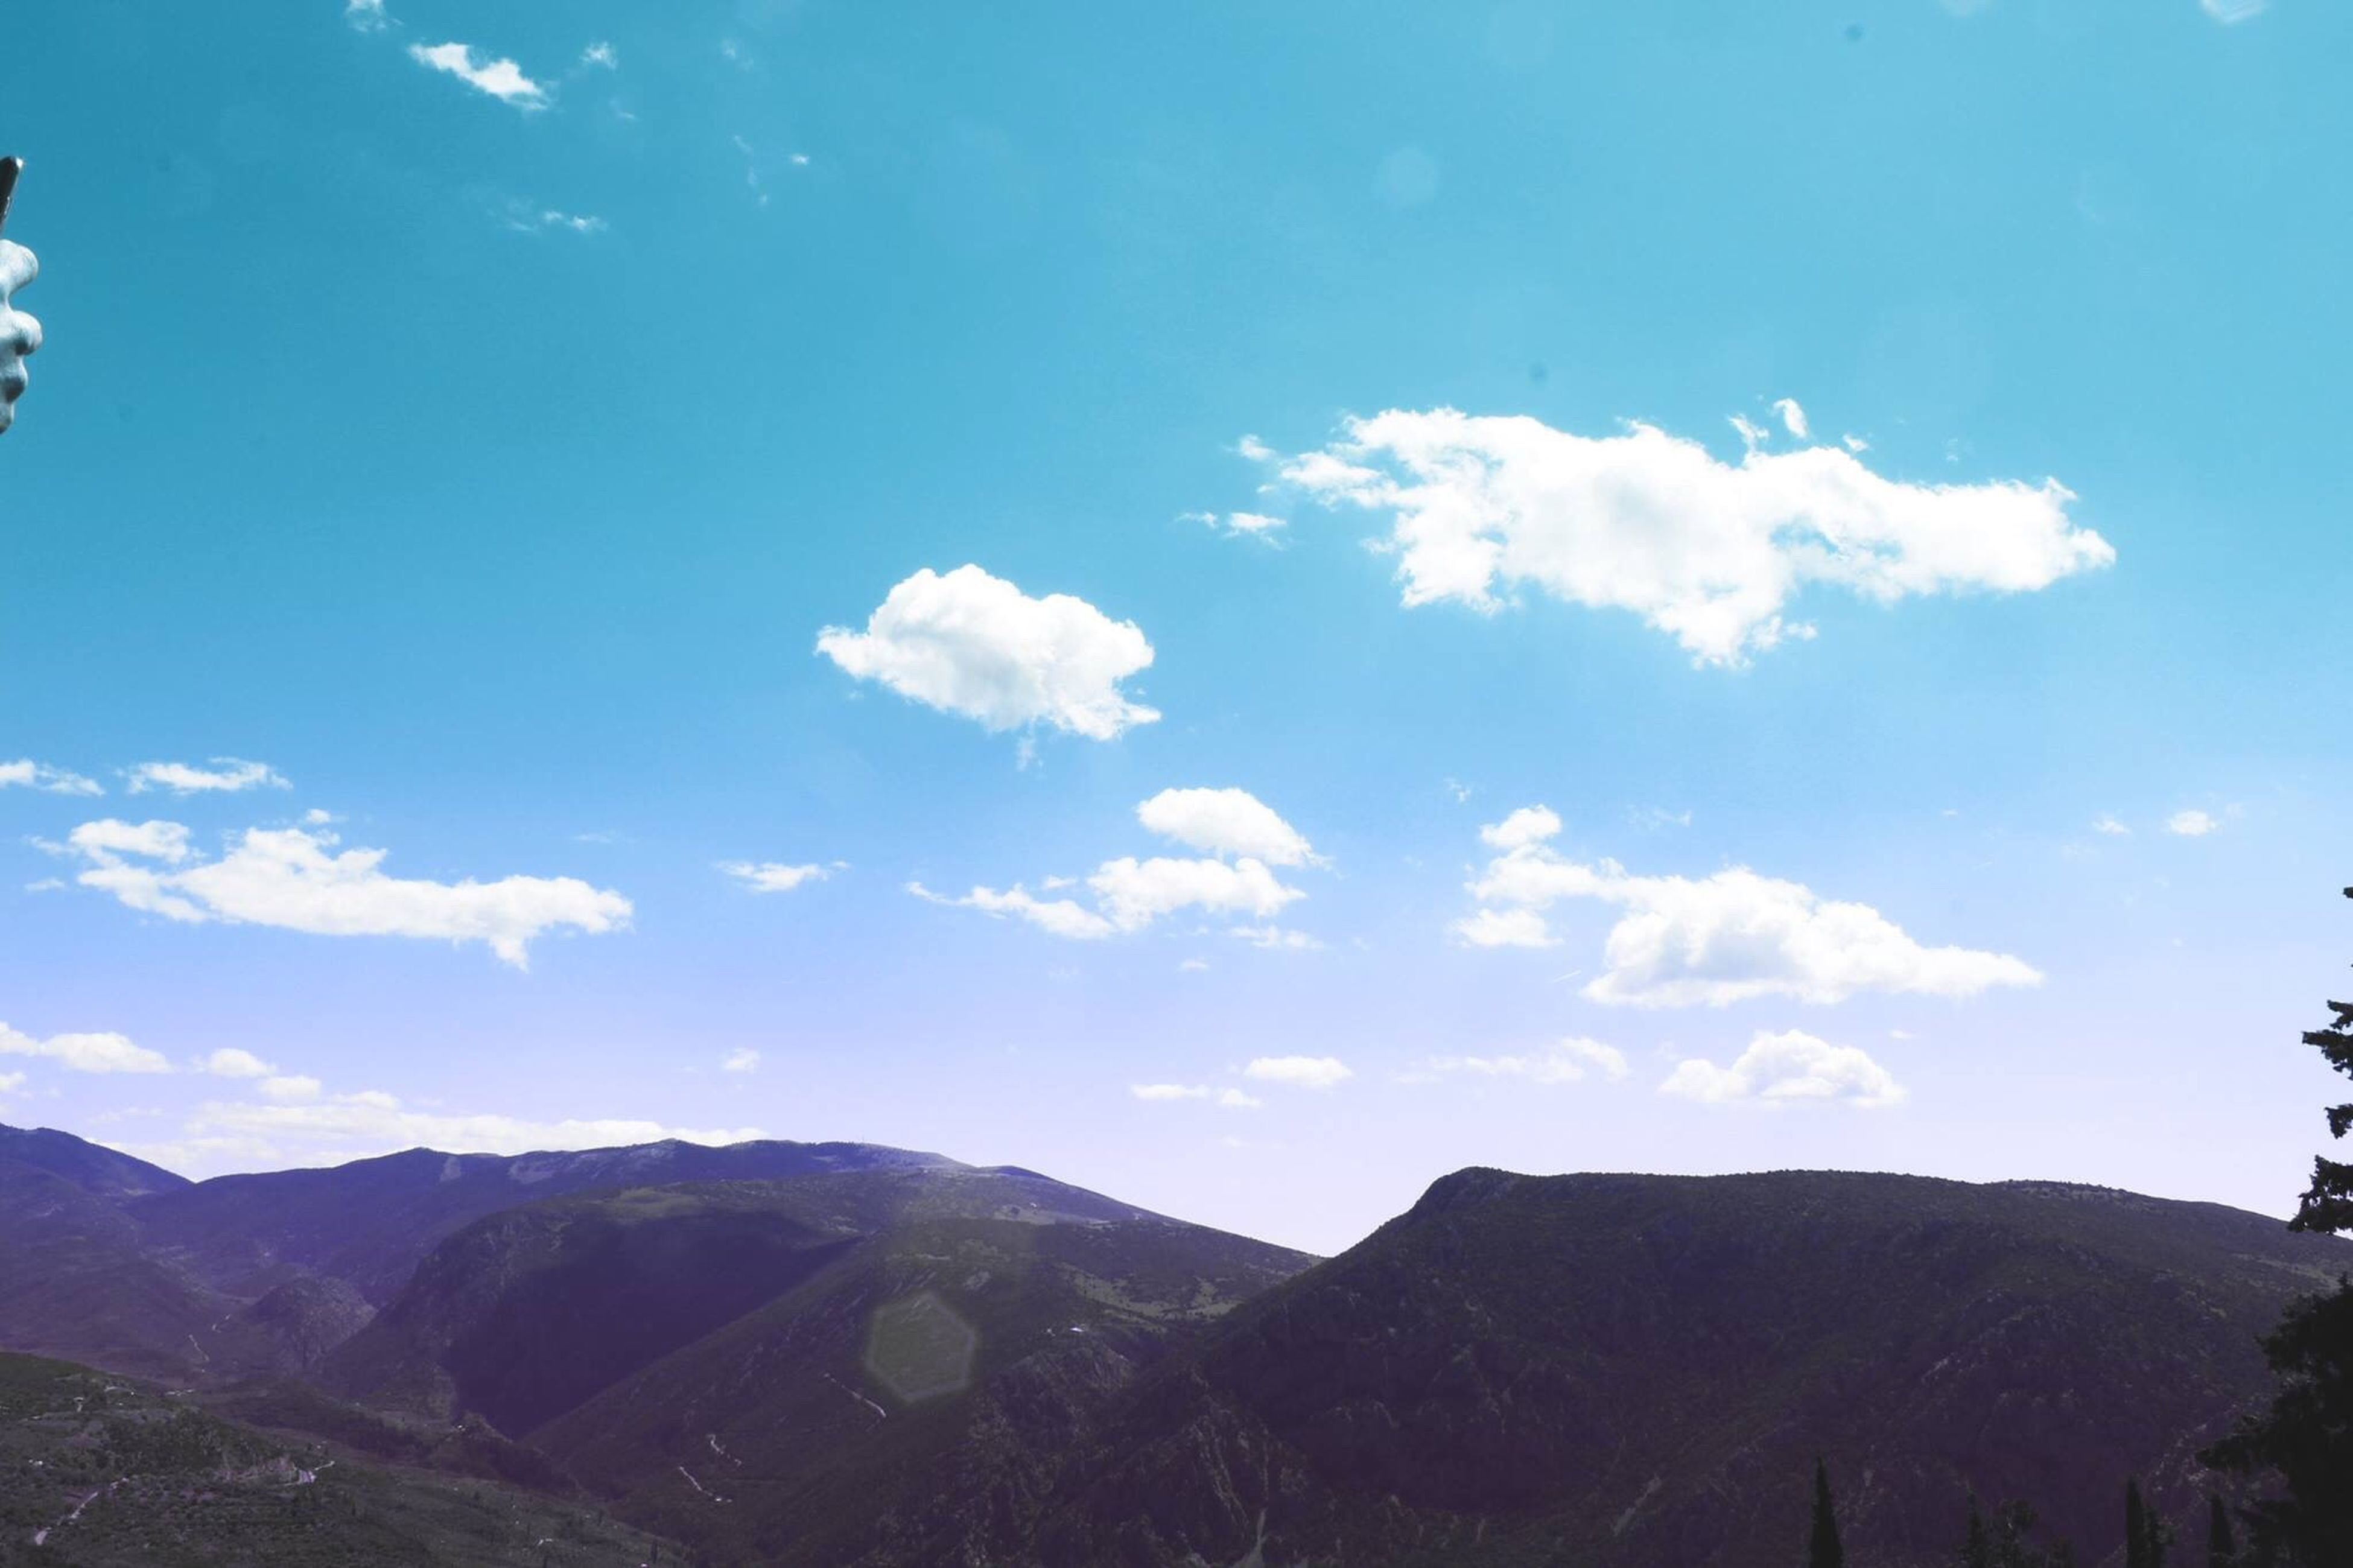 mountain, beauty in nature, sky, nature, outdoors, tranquility, day, no people, scenics, landscape, freshness